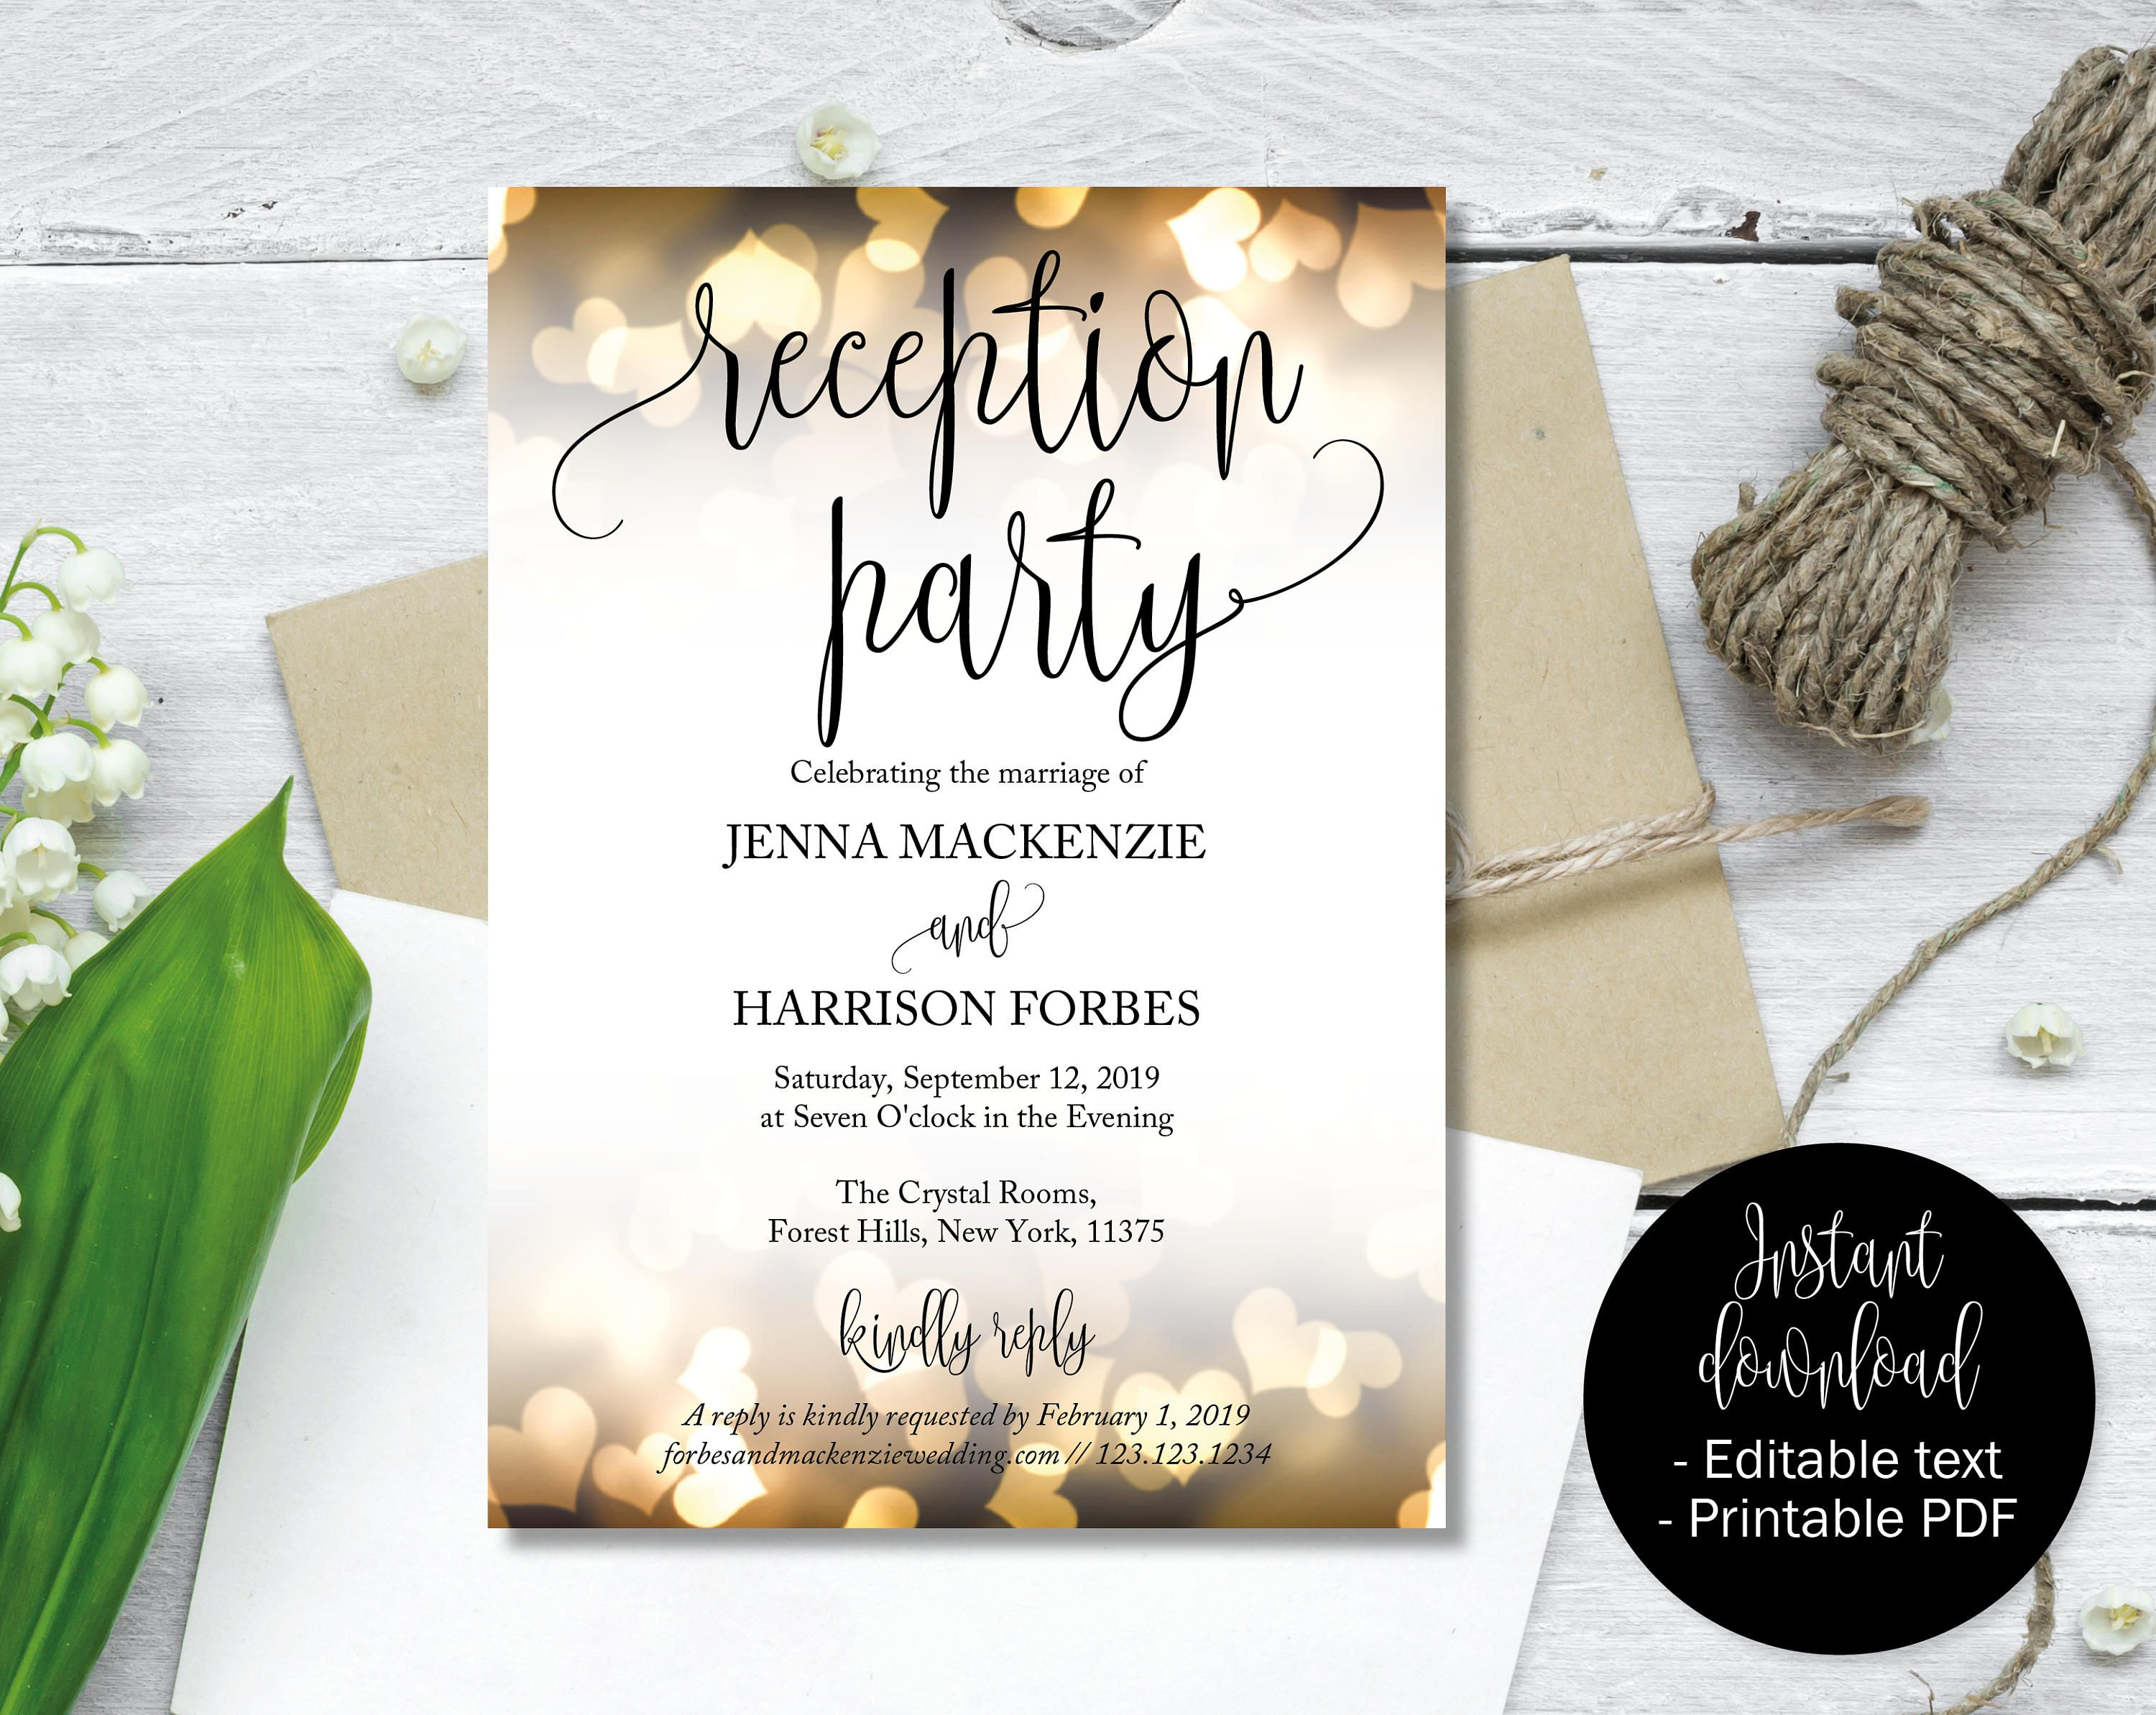 Wedding Reception Party Invitations Wedding Invitations Wedding Printable Wedding Invitations Wedding Invitation Templates Modern Wedding Invitation Wording